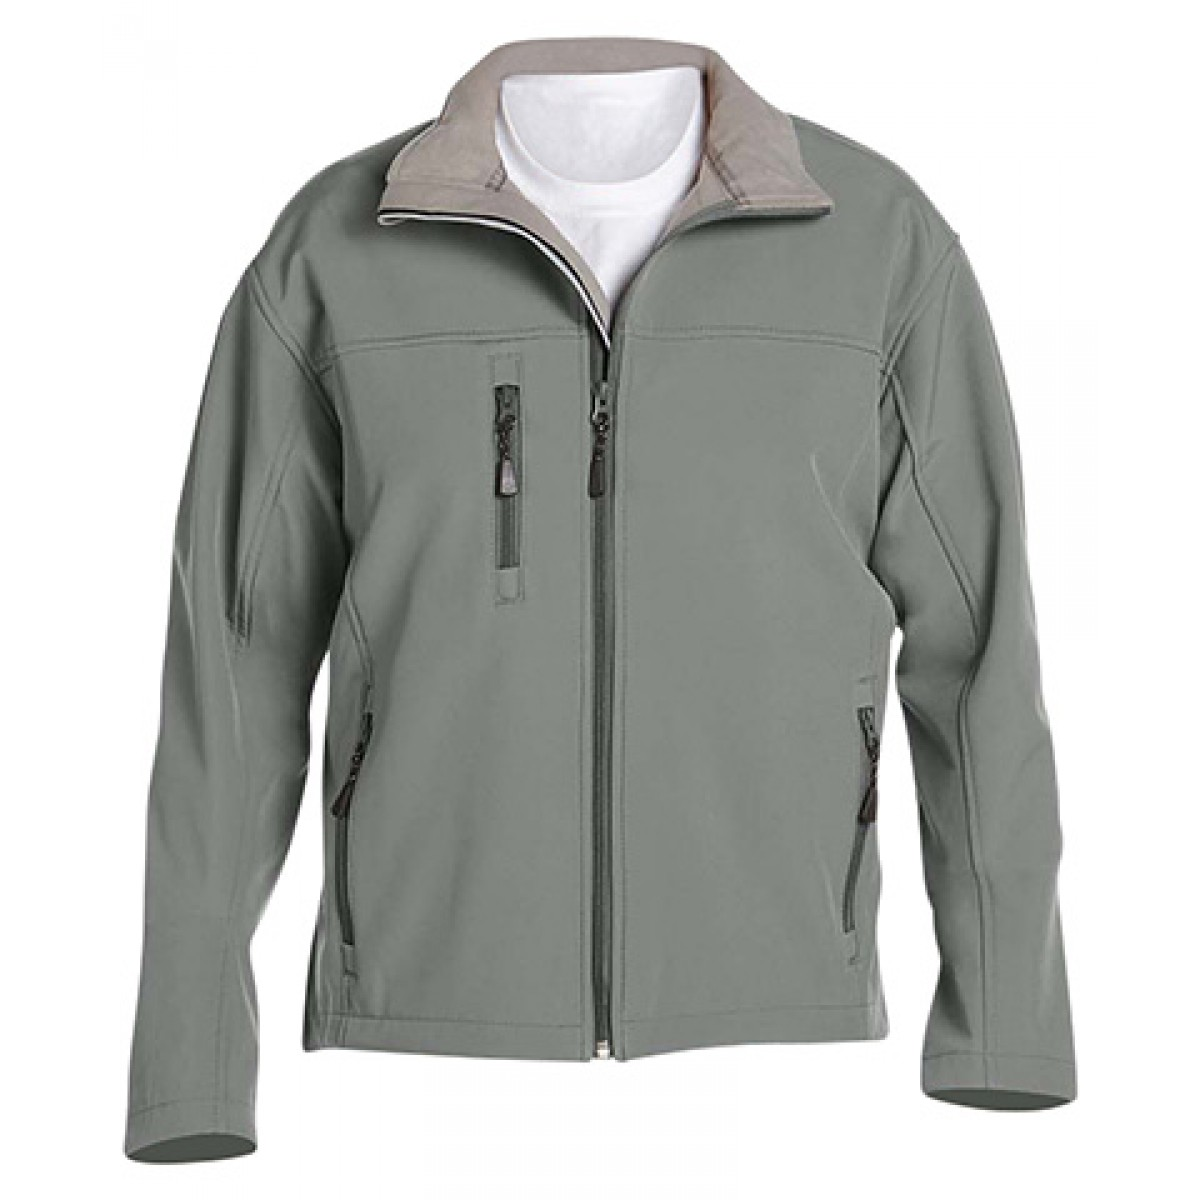 Men's Soft Shell Jacket-Charocal-2XL